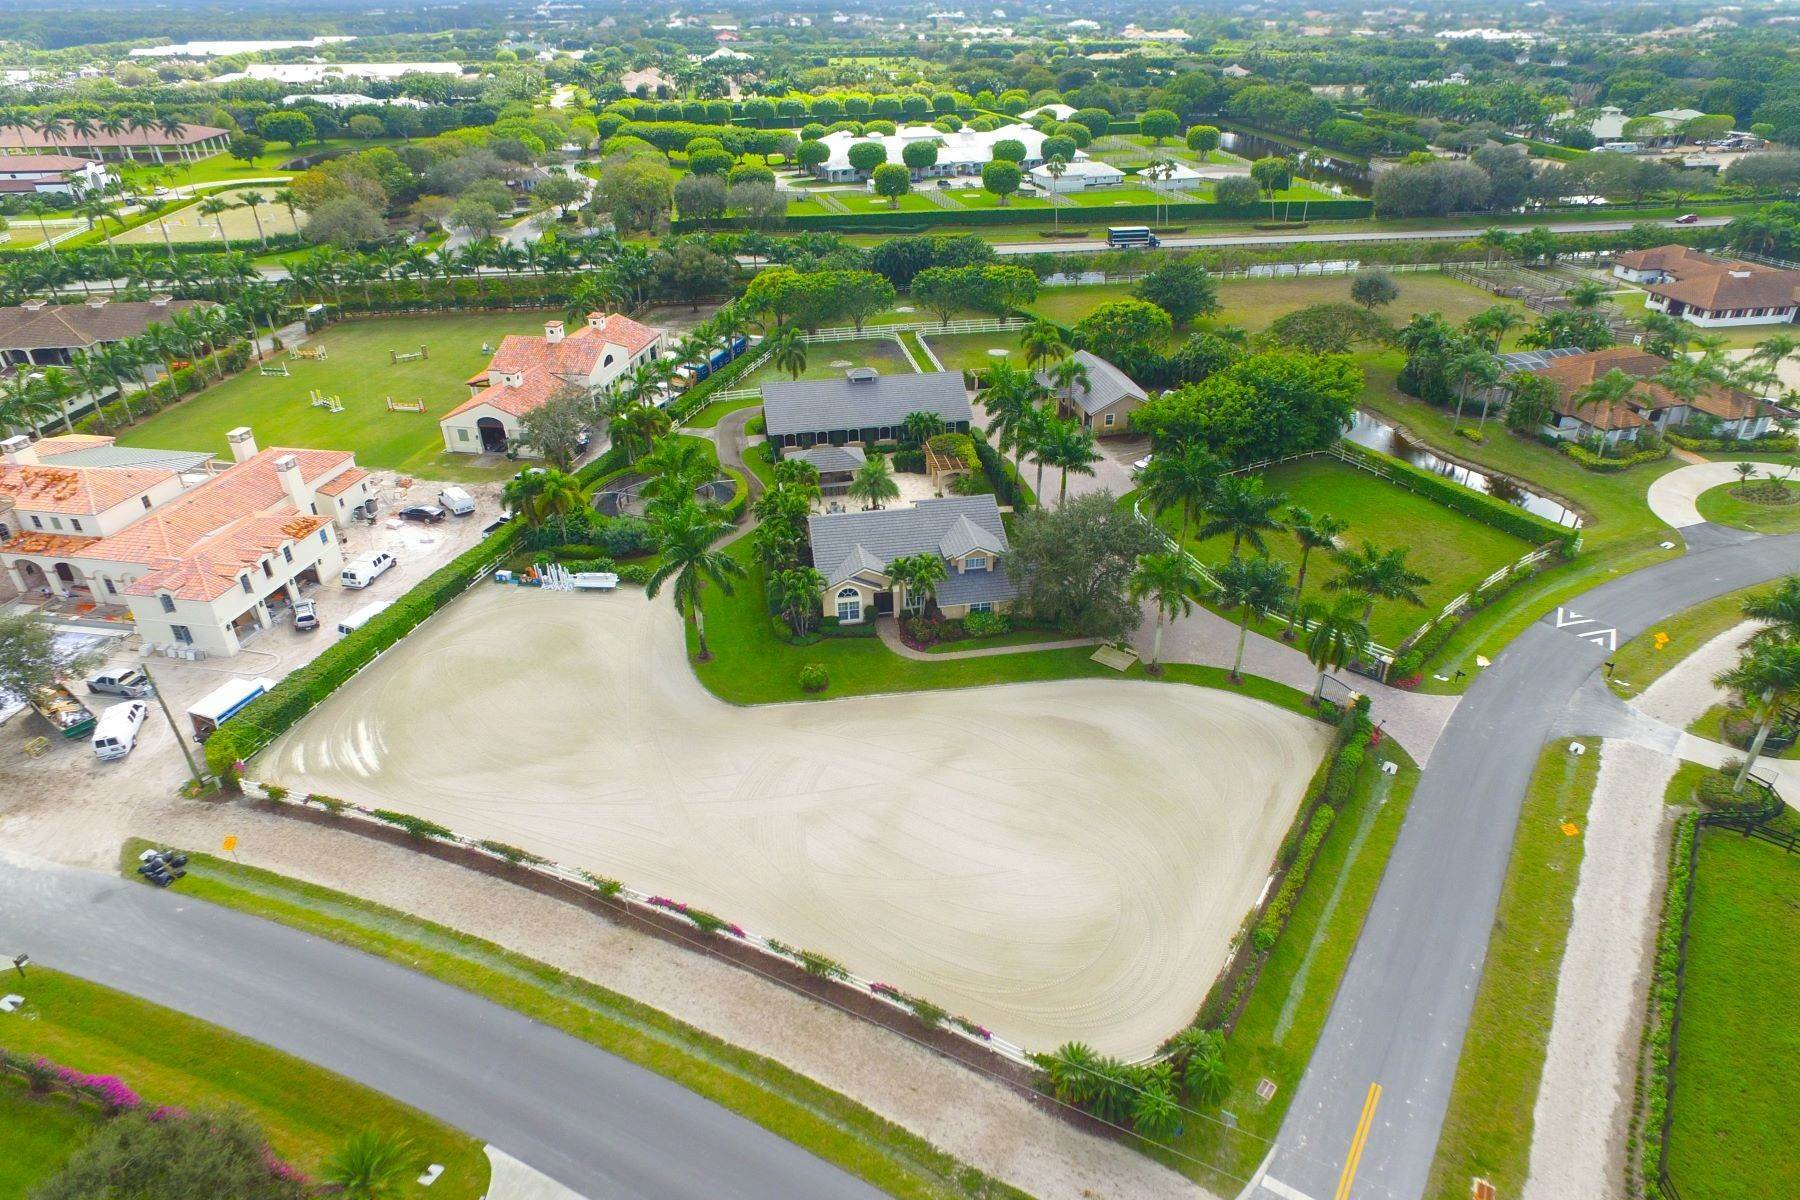 Farm and Ranch Properties 在 14911 Equestrian Way 惠灵顿, 佛罗里达州 33414 美国